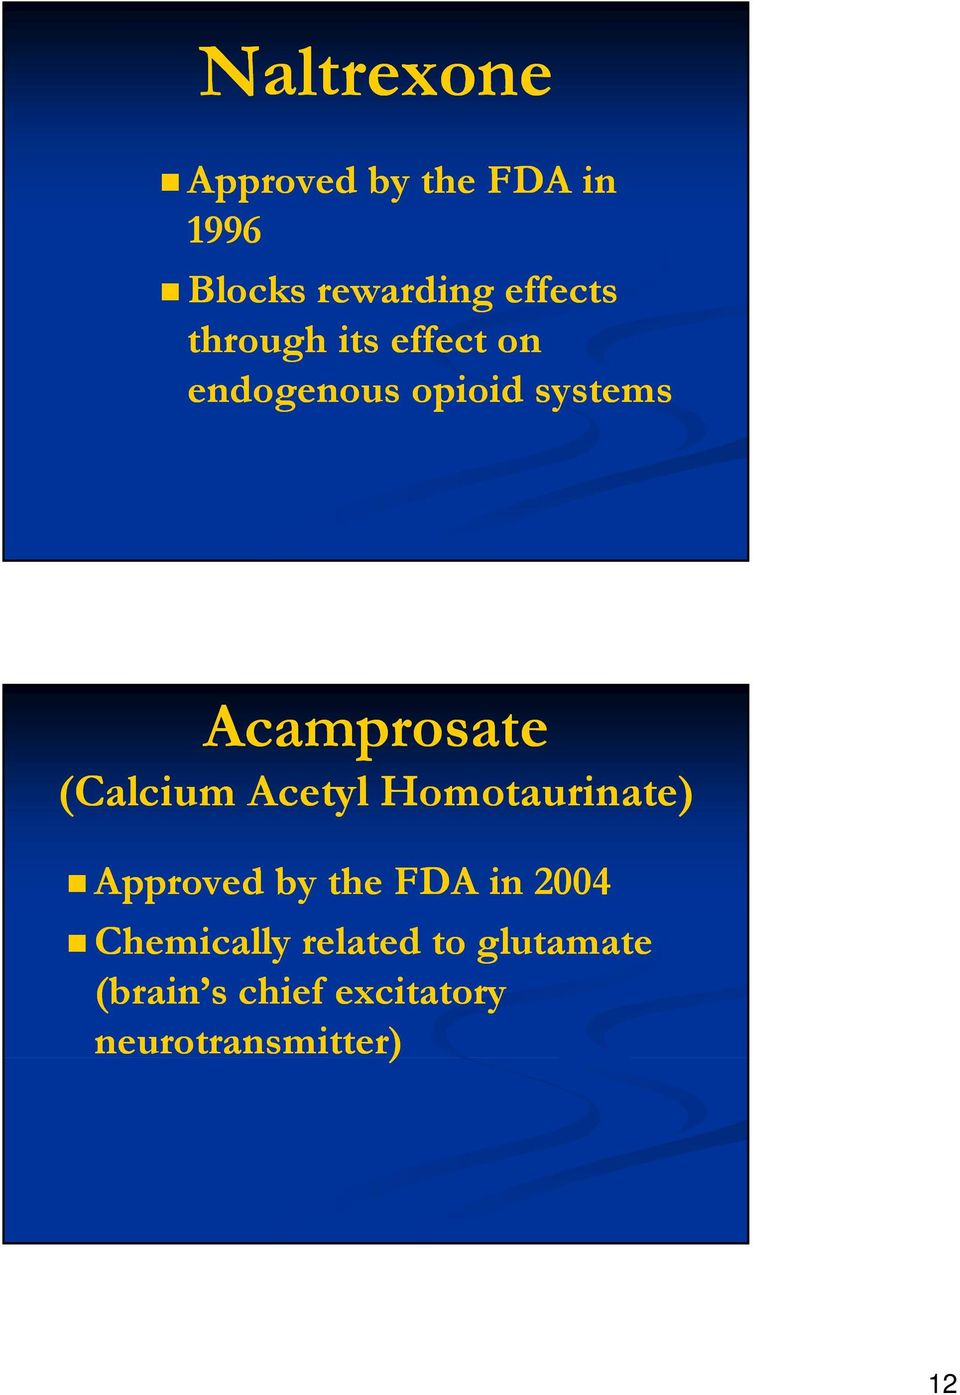 (Calcium Acetyl Homotaurinate) Approved by the FDA in 2004